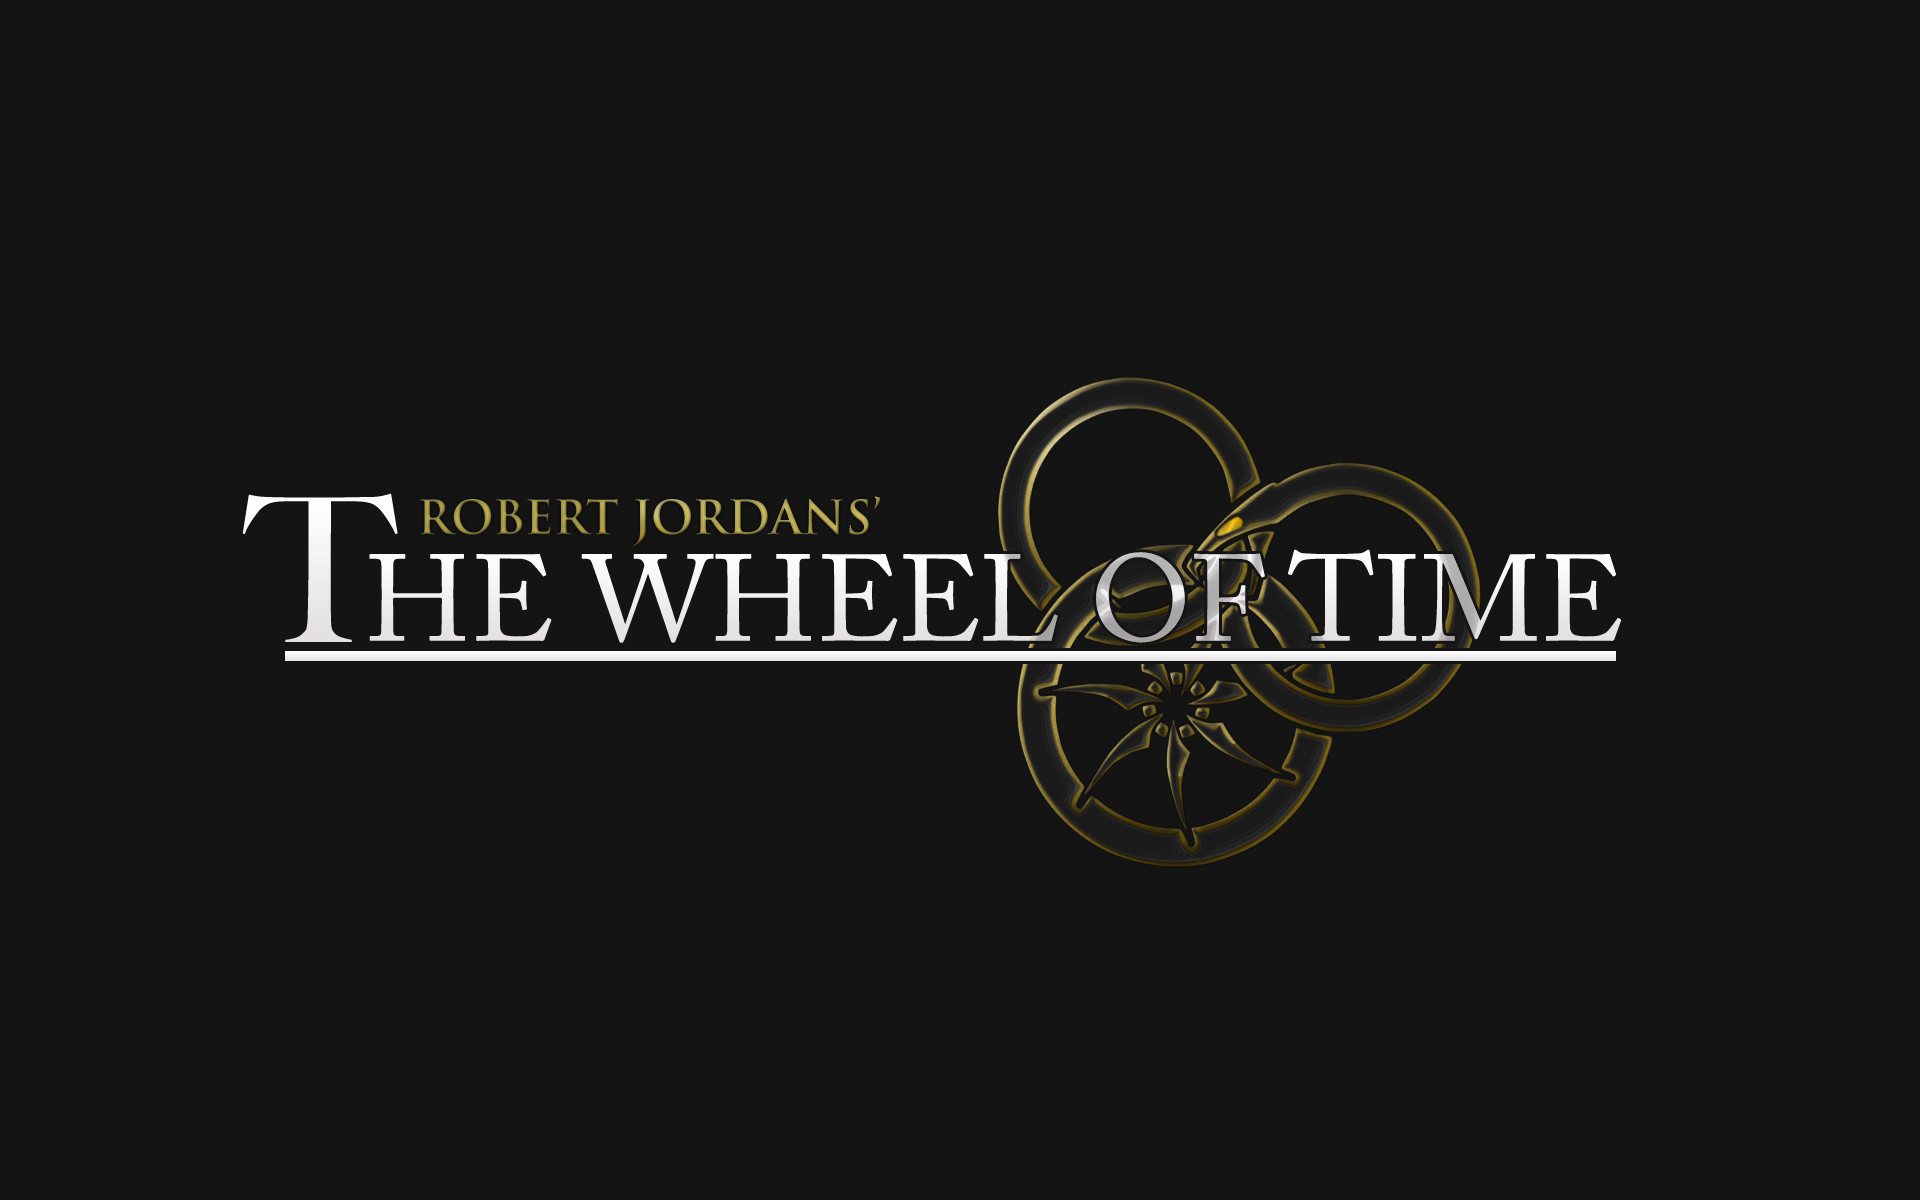 Some 'The Wheel of Time' Wallpapers